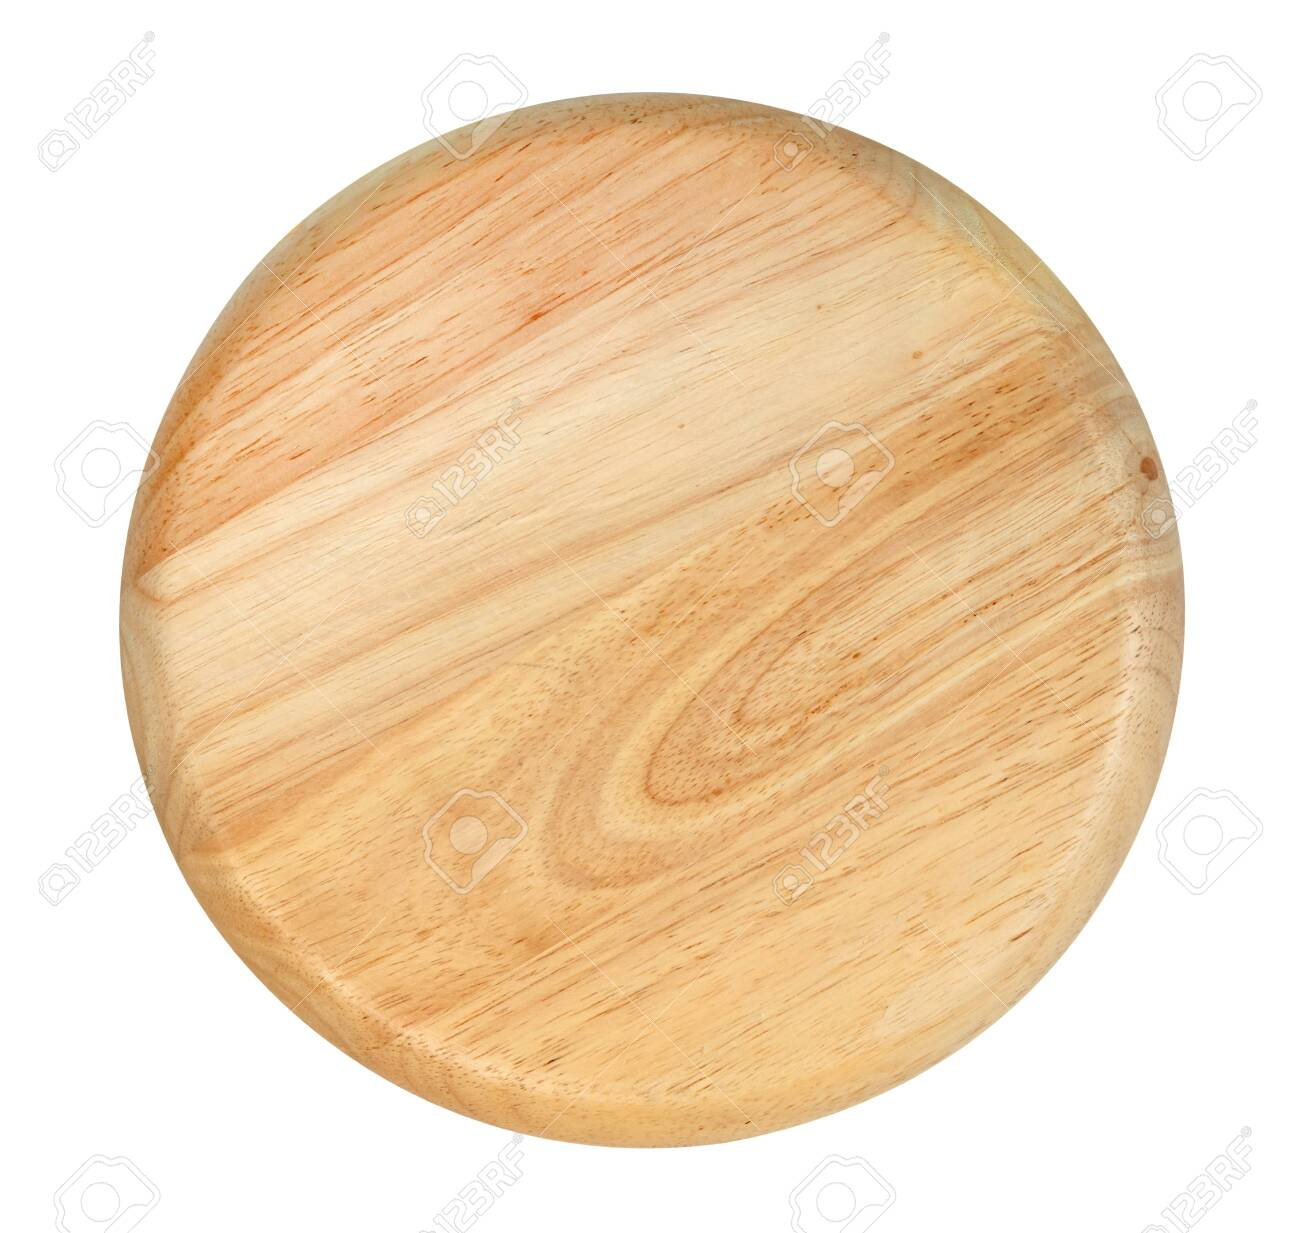 Wooden plate isolated on white background ,include clipping path - 143220919